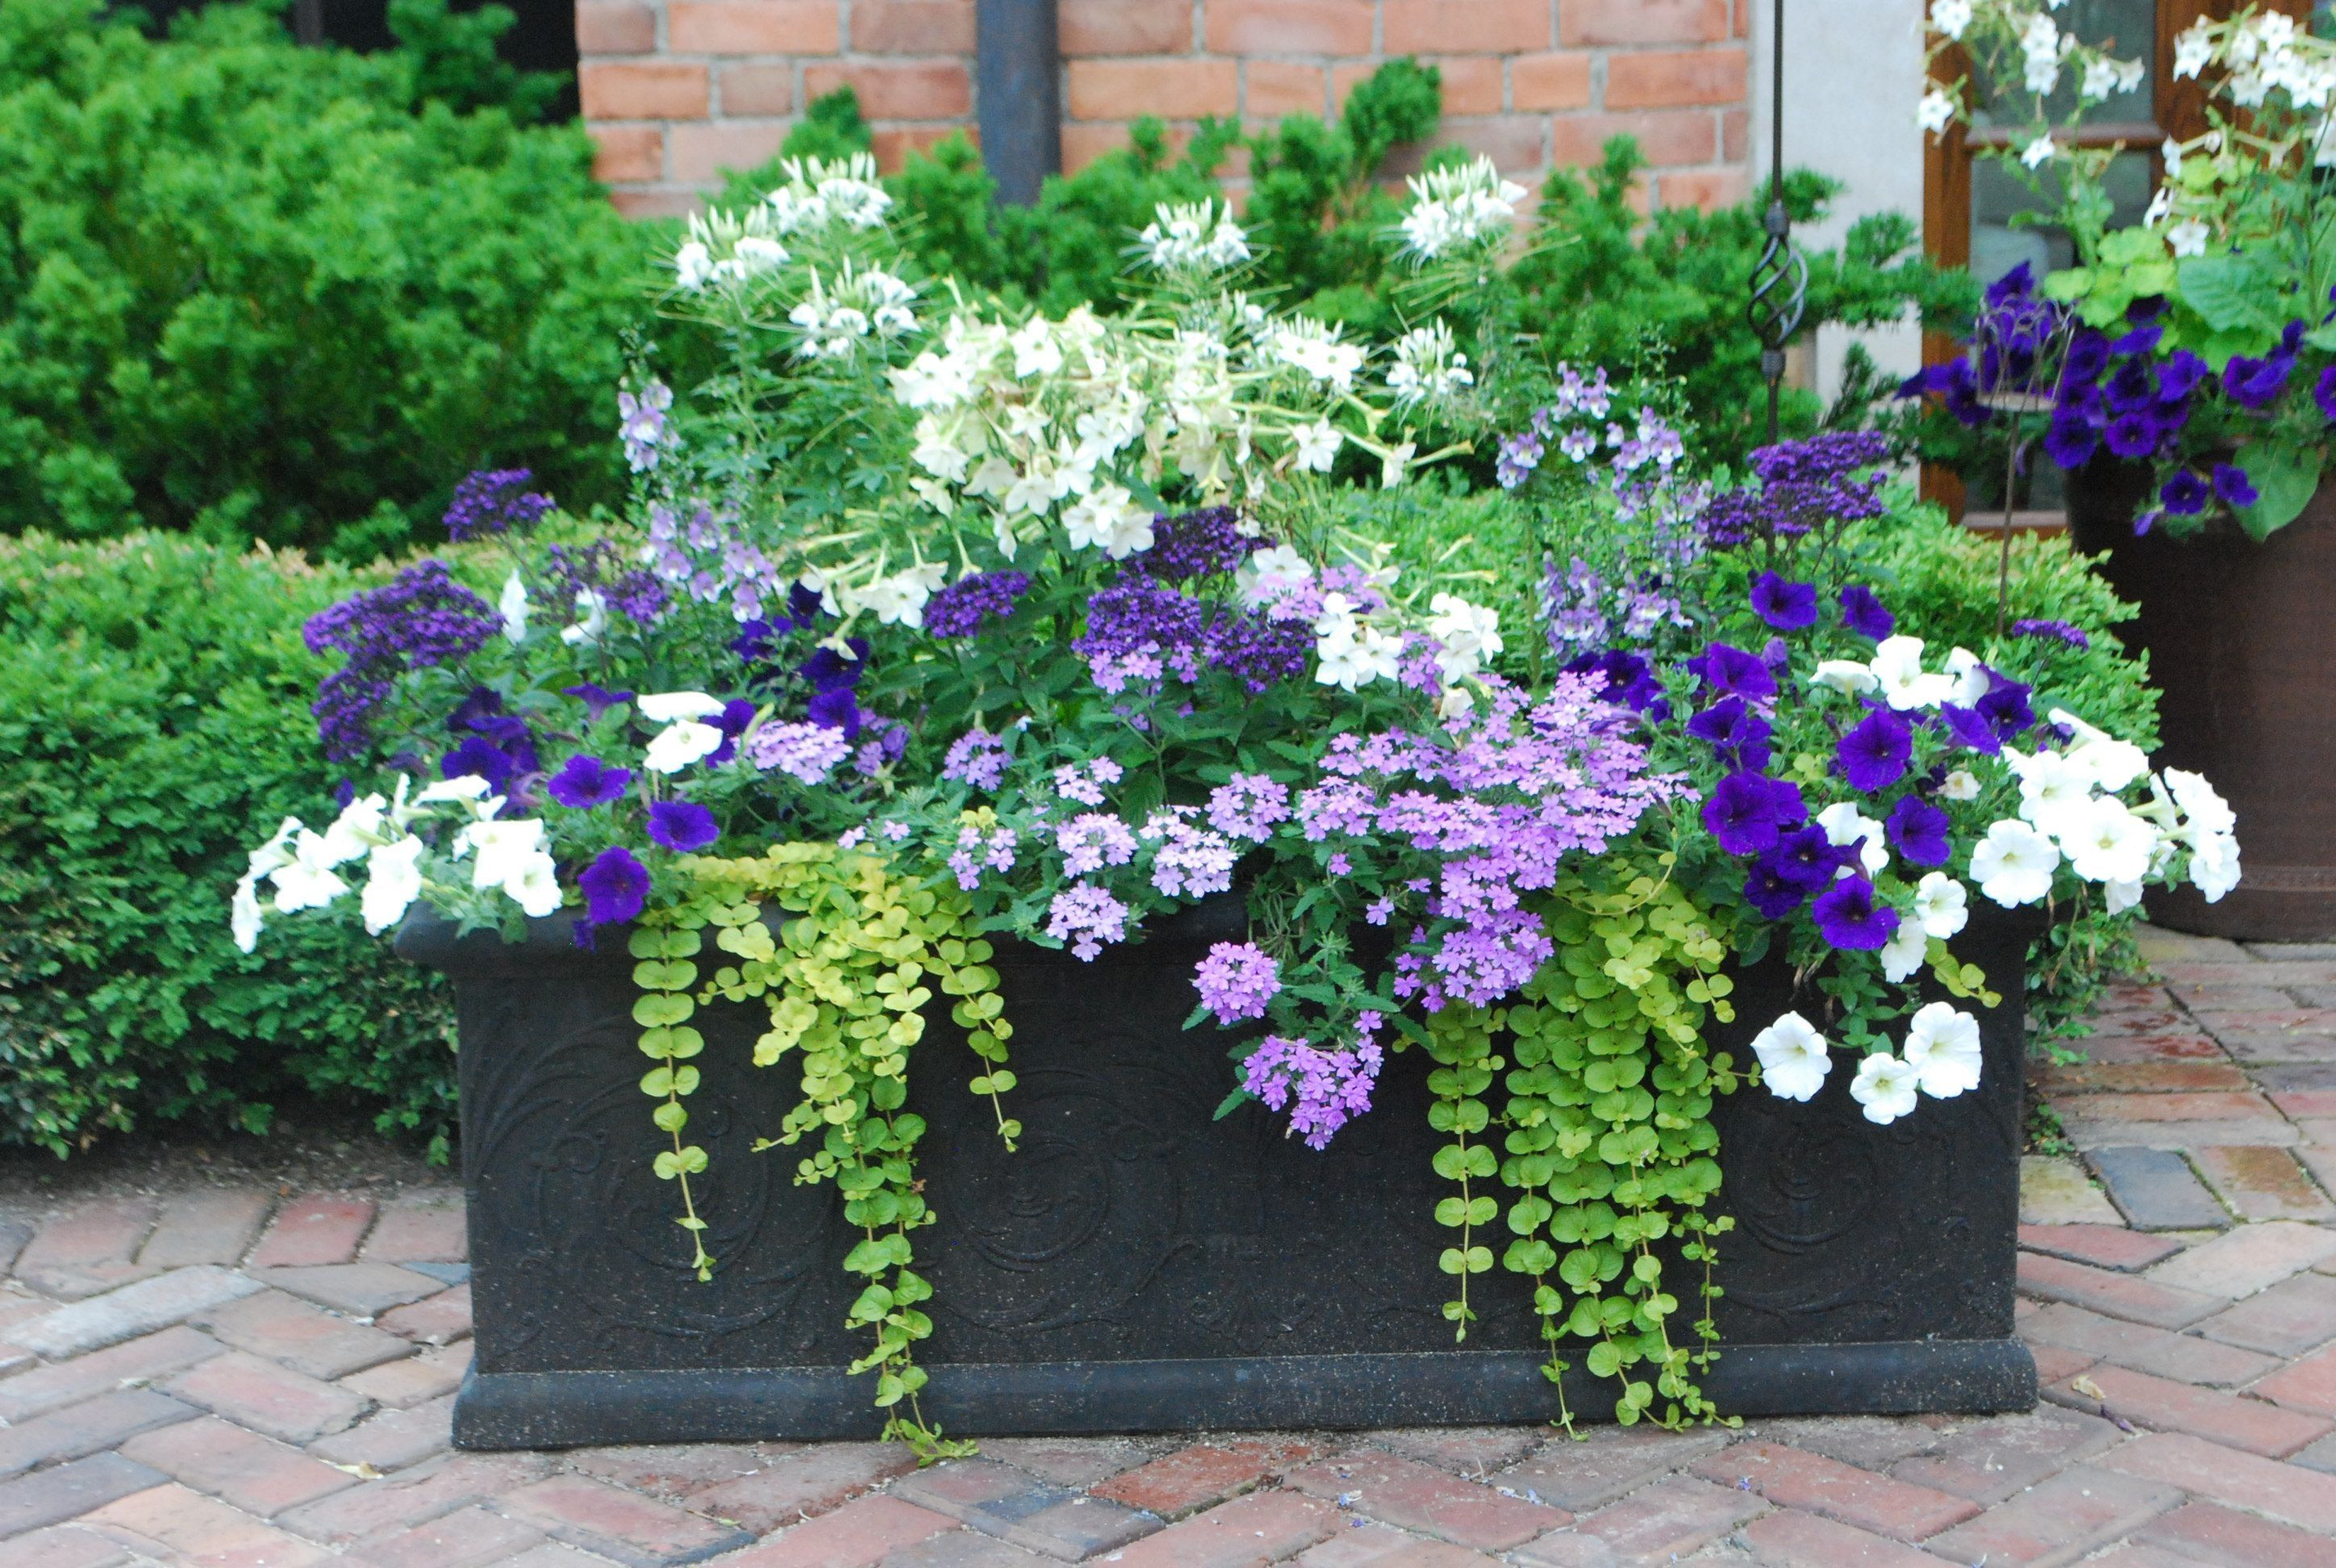 45 Beautiful Flowers in Containers Gardening Ideas | Container ...